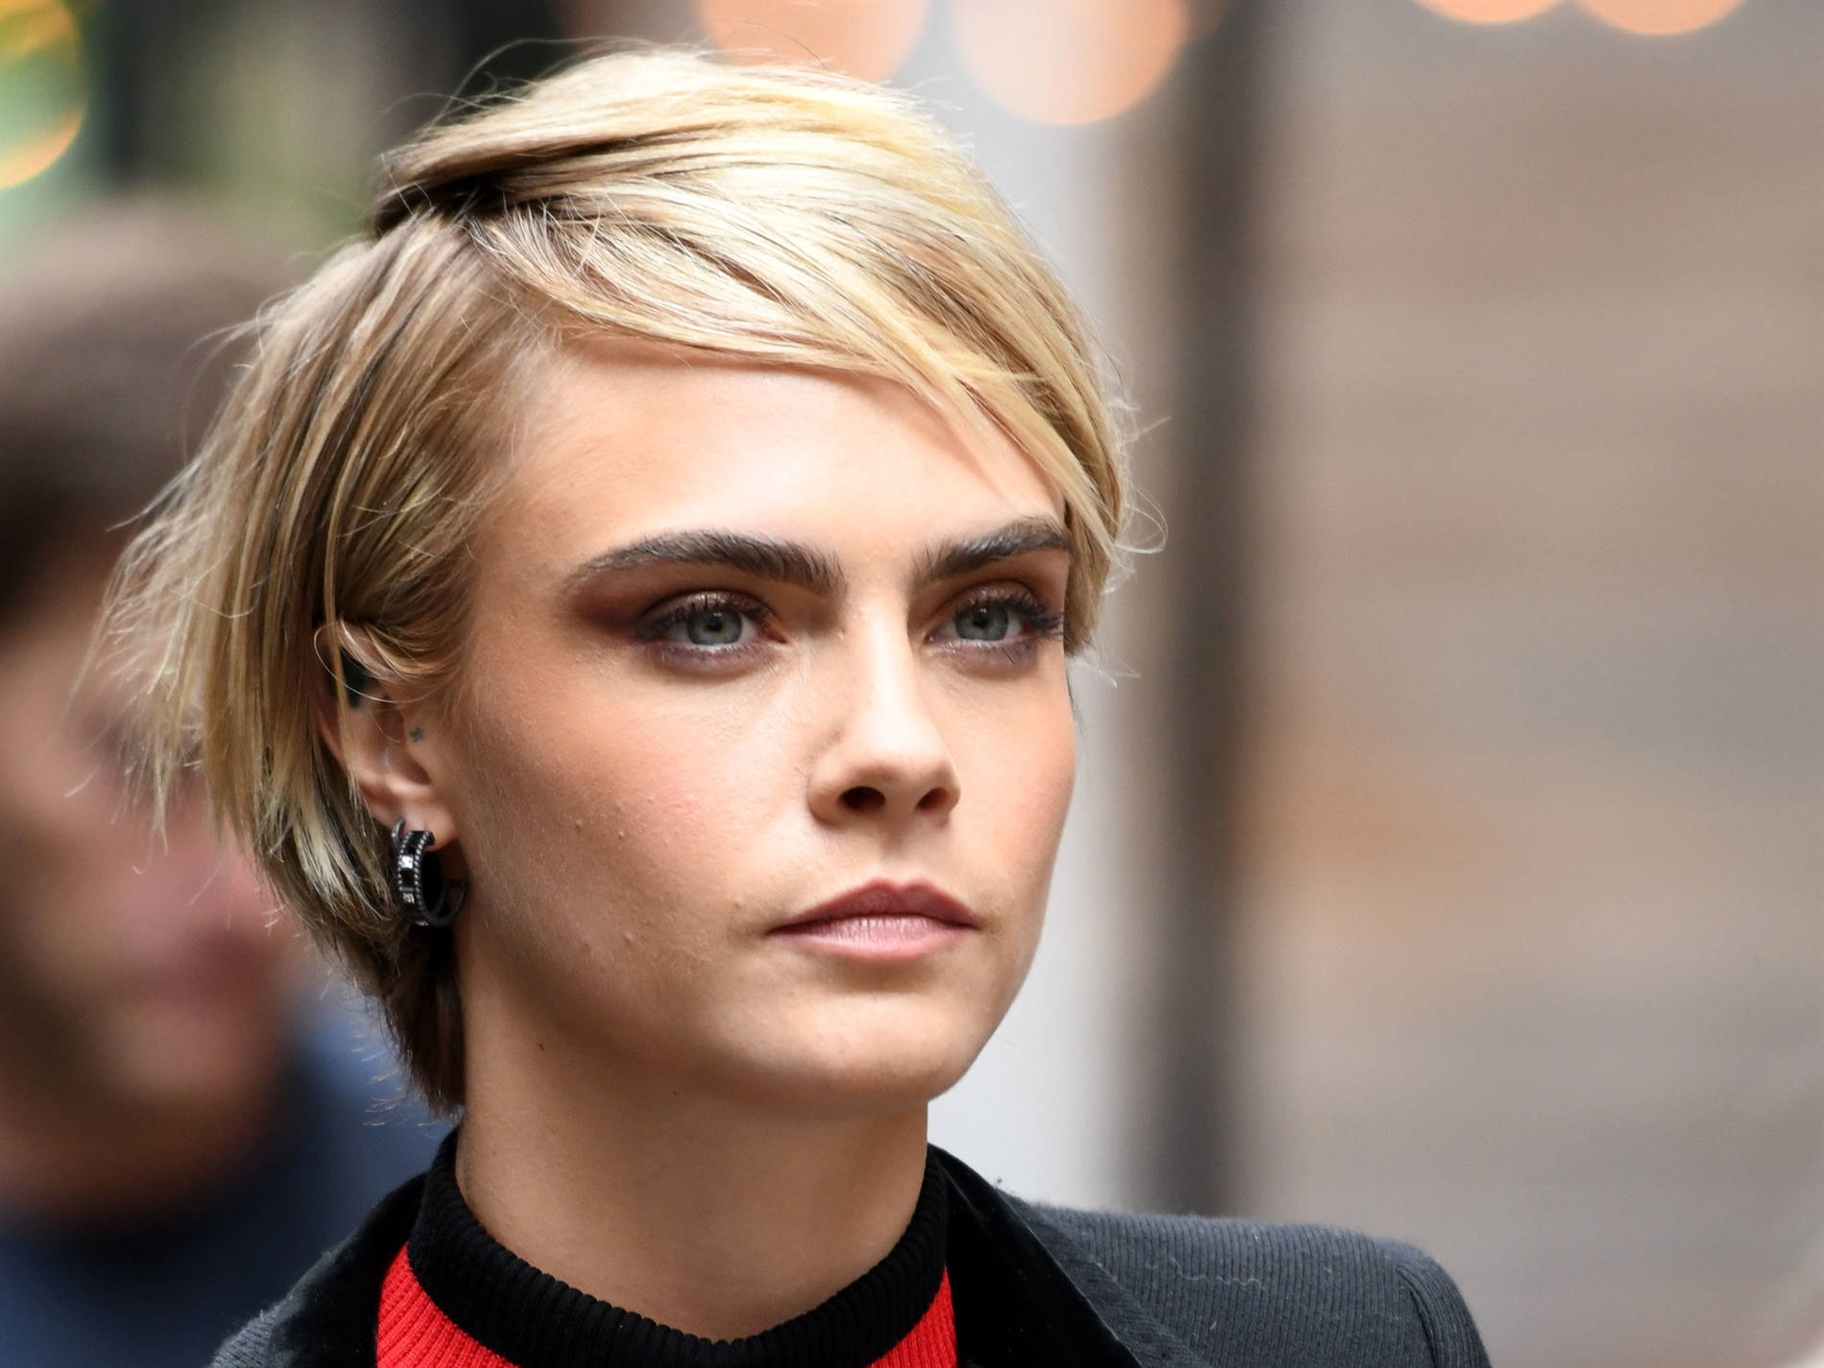 Short Hair Trends Cara Delevigne  Deep side parting like Cara Delevingne It is the deep side parting that carries this look - a trend we do not get around this season, no matter if we are talking short or long hair. The slightly longer neck hair, allows to create fullness at the back. Use volume spray or a good mousse to create fullness in the hair.